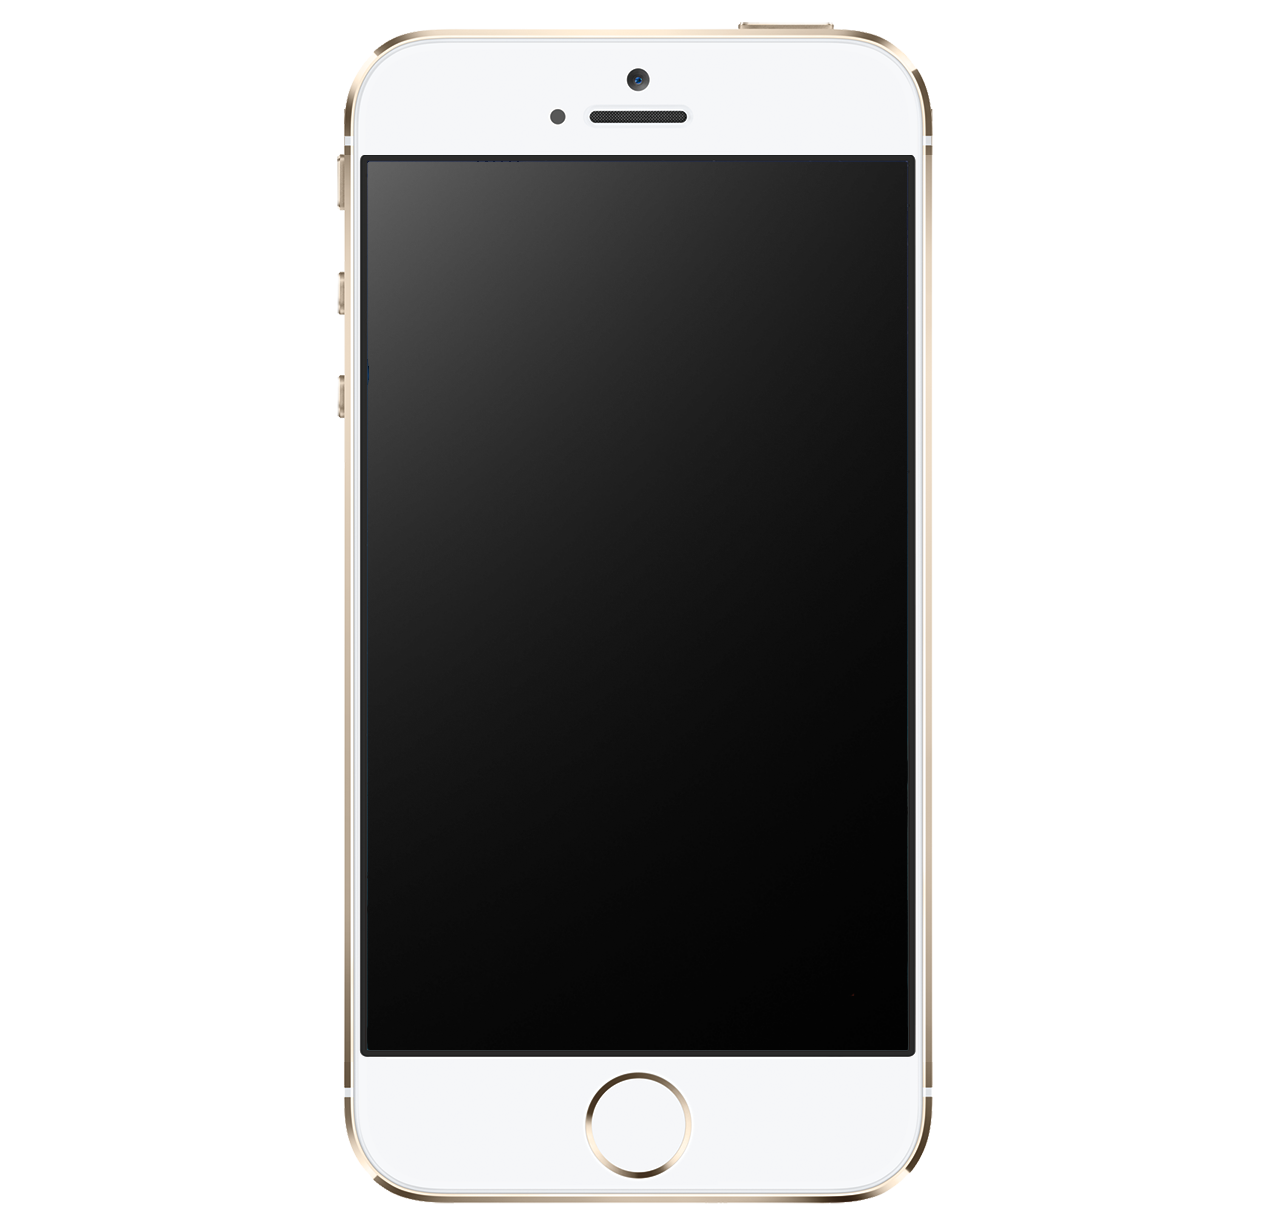 Golden IPhone 5S PNG Image